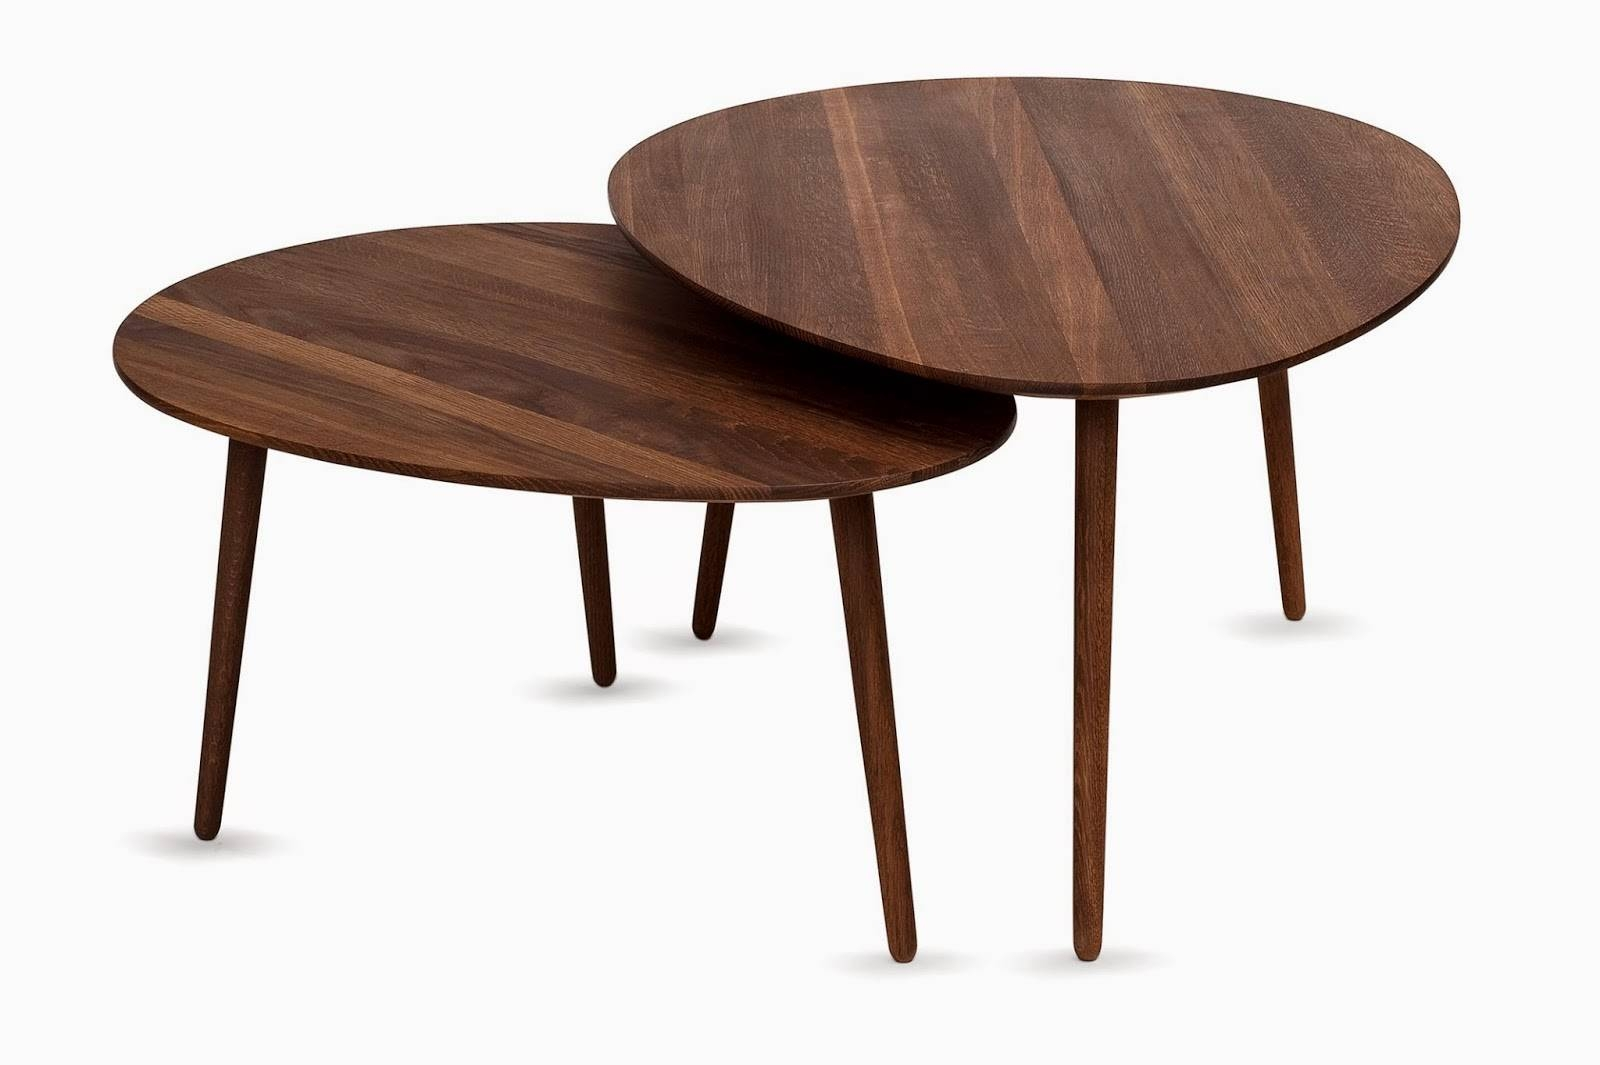 Furniture: Creative Minimalist Small Oval Coffee Table For Living Intended For Small Wood Coffee Tables (View 7 of 30)